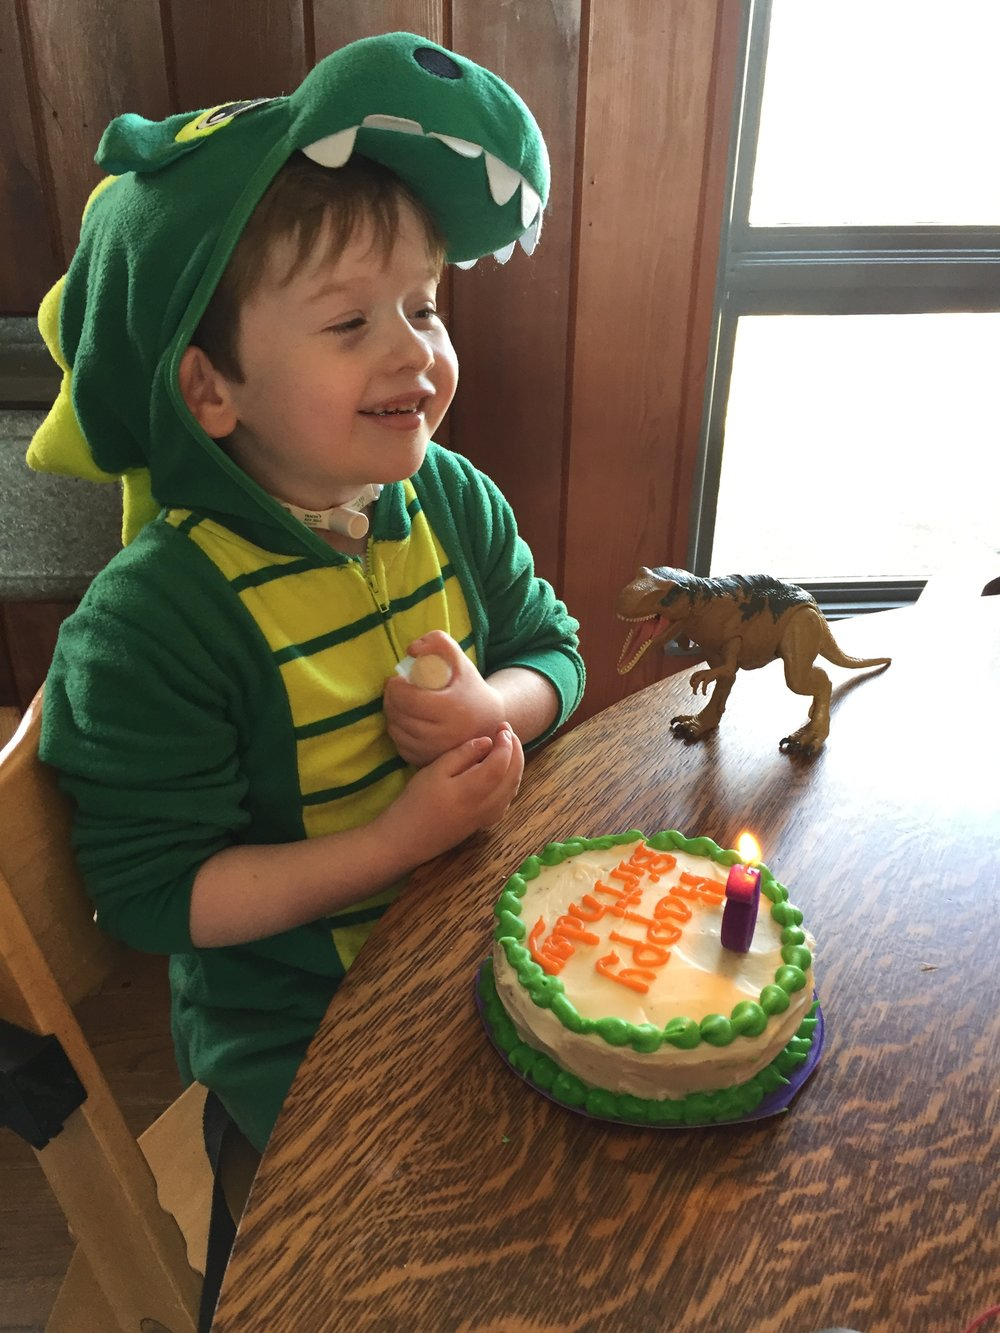 Getting ready to blow out the candle from his trach!